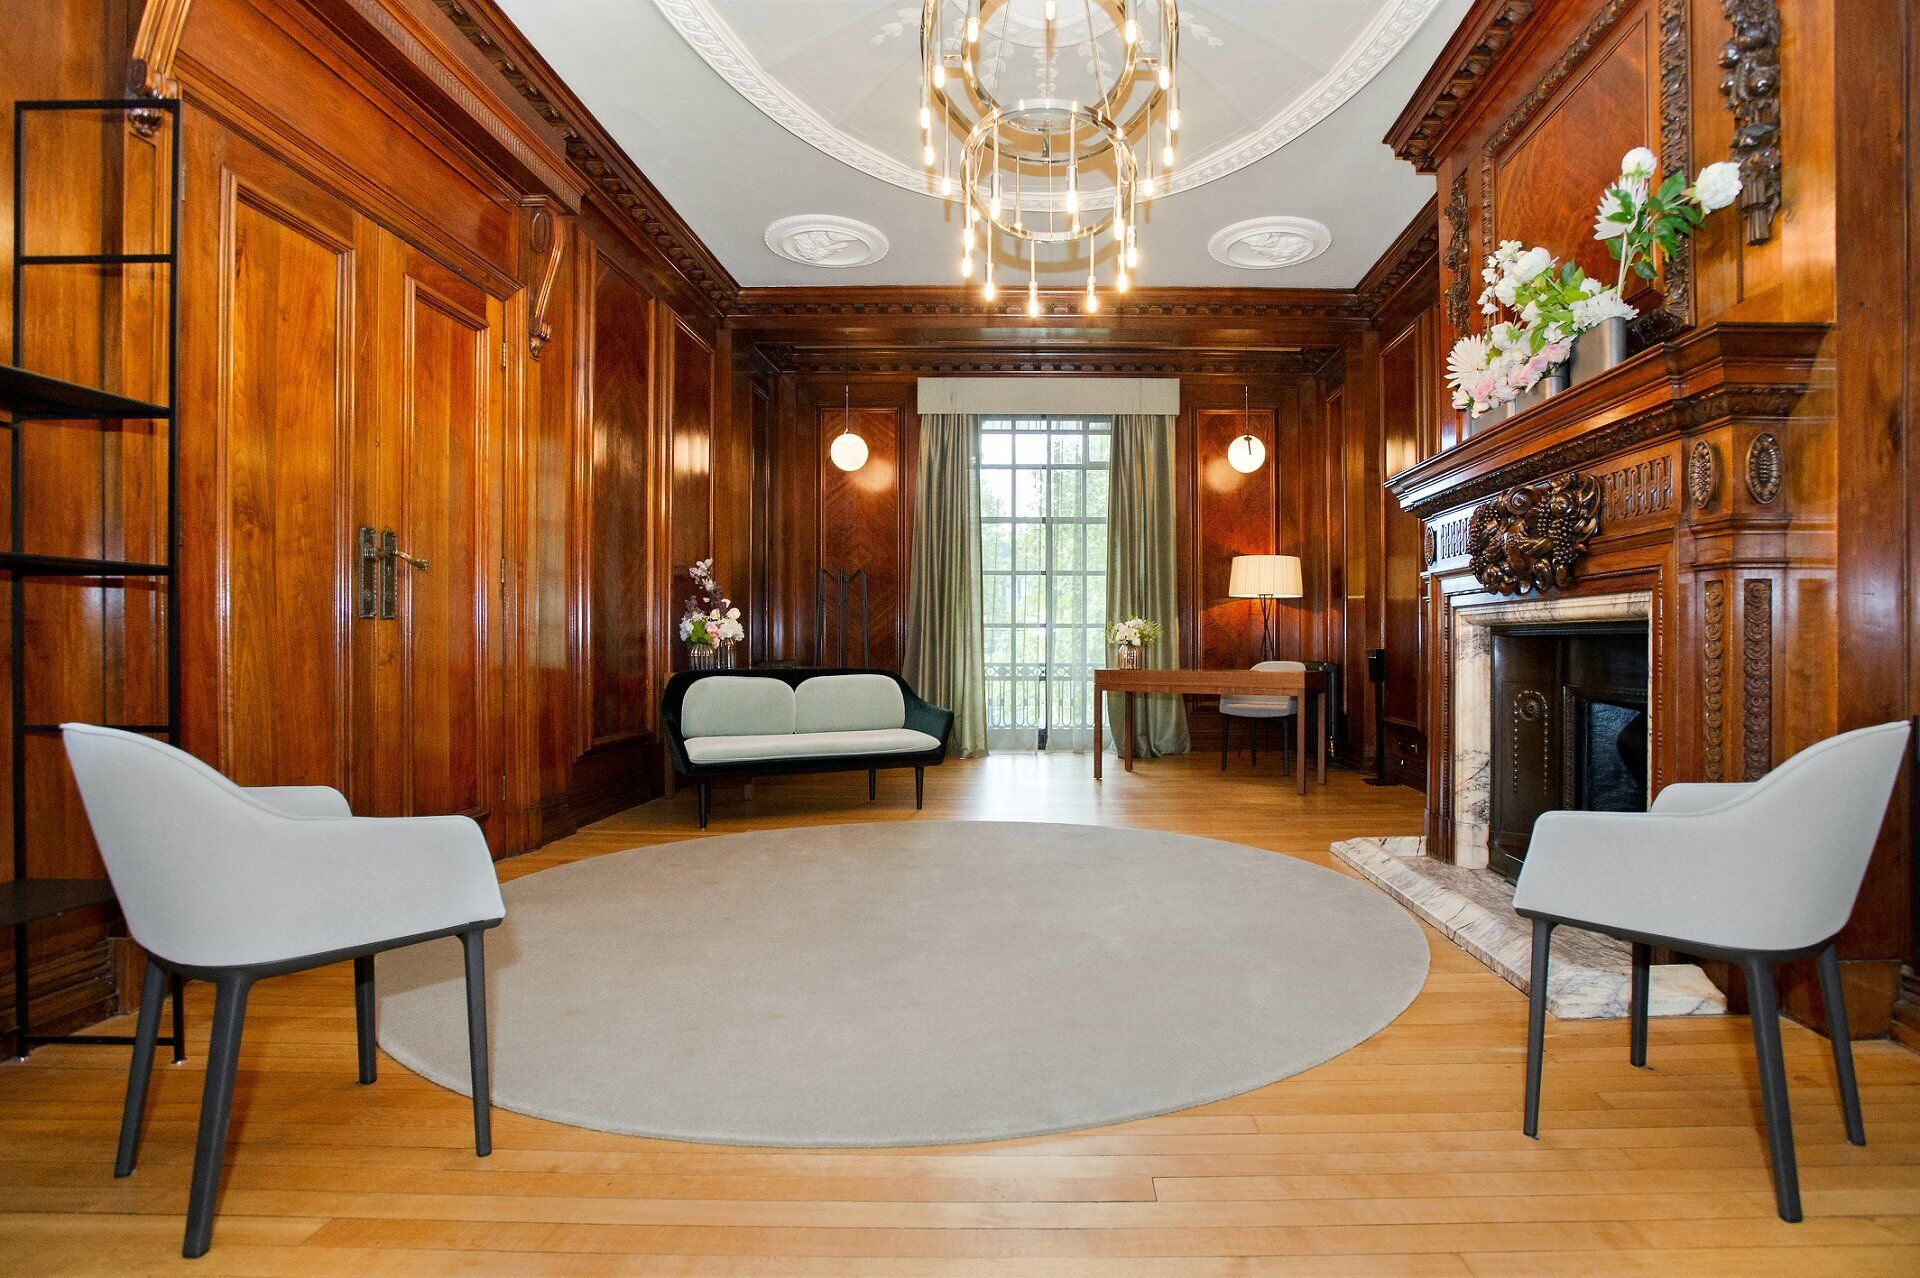 the marylebone room and old marylebone town hall new cerermony layouts here shows seating under new social distancing guidelines with a maximum of 6 guests